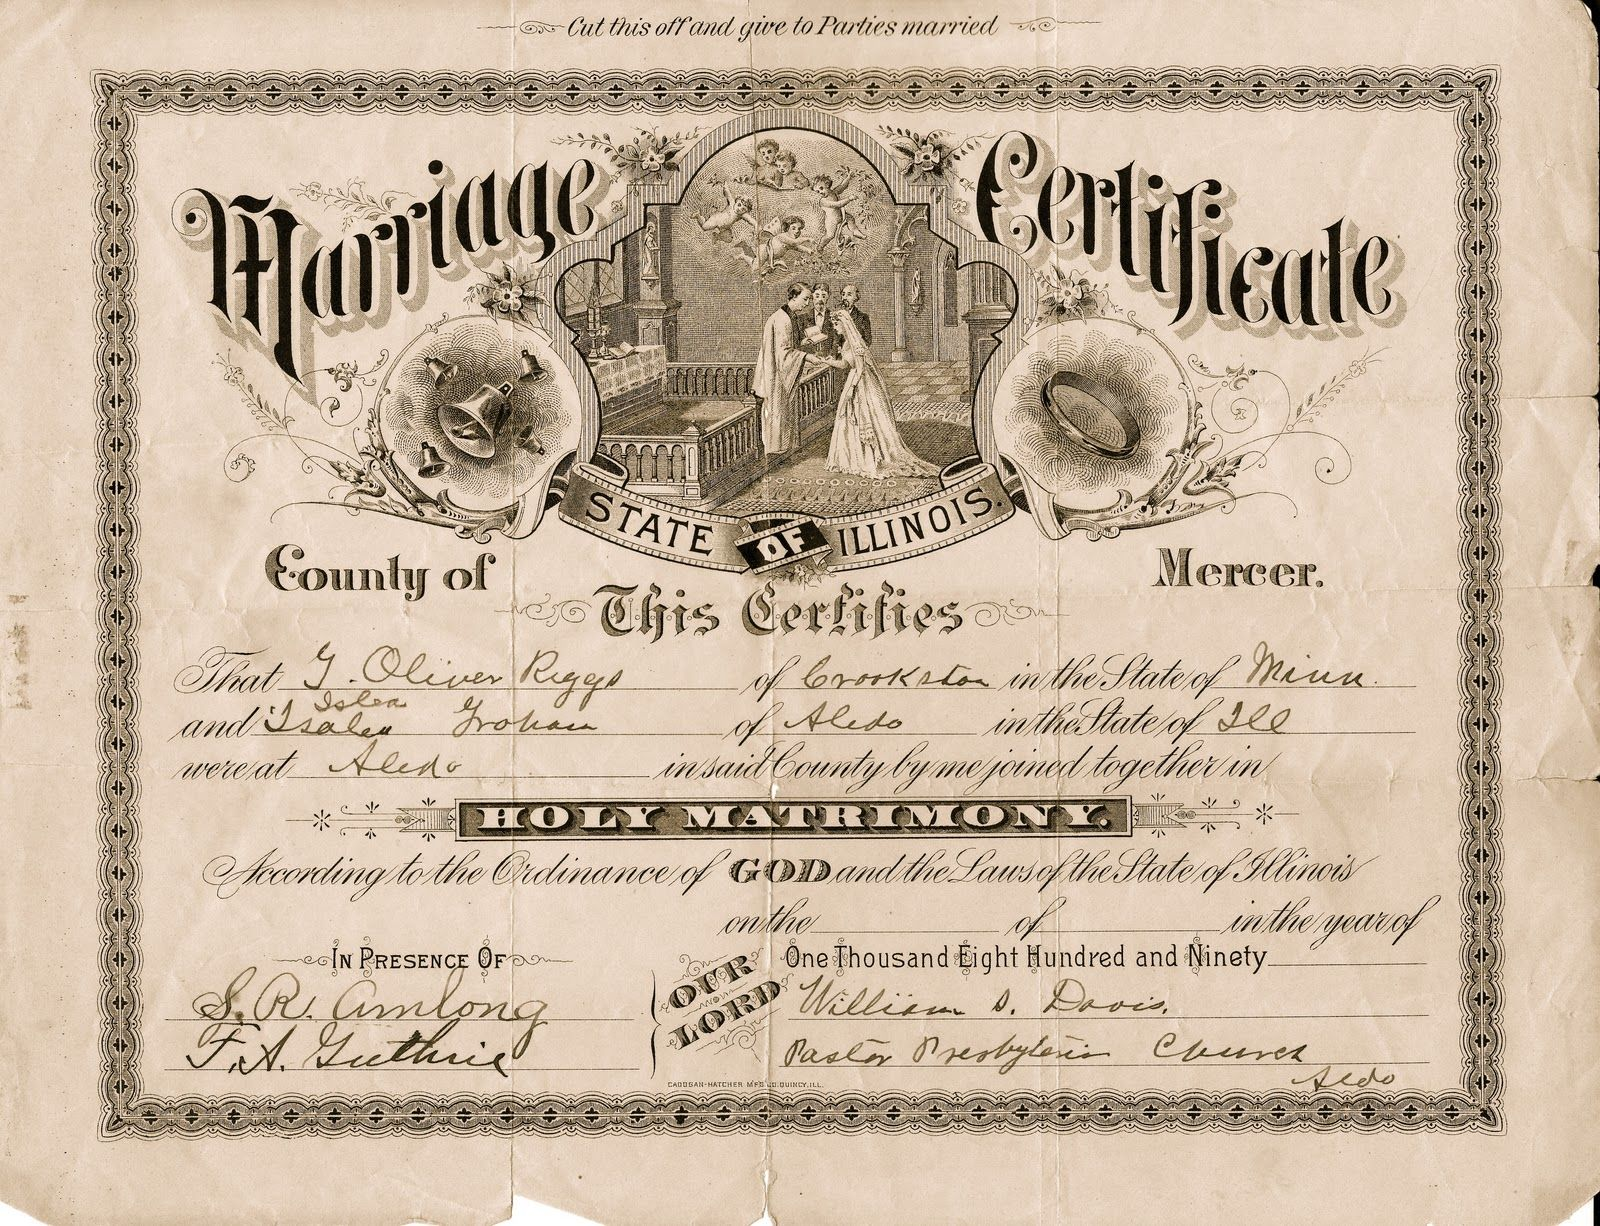 vintage wedding certificate  My Musical Family: A License to Wed | PRINTABLE DOWNLOADS ...